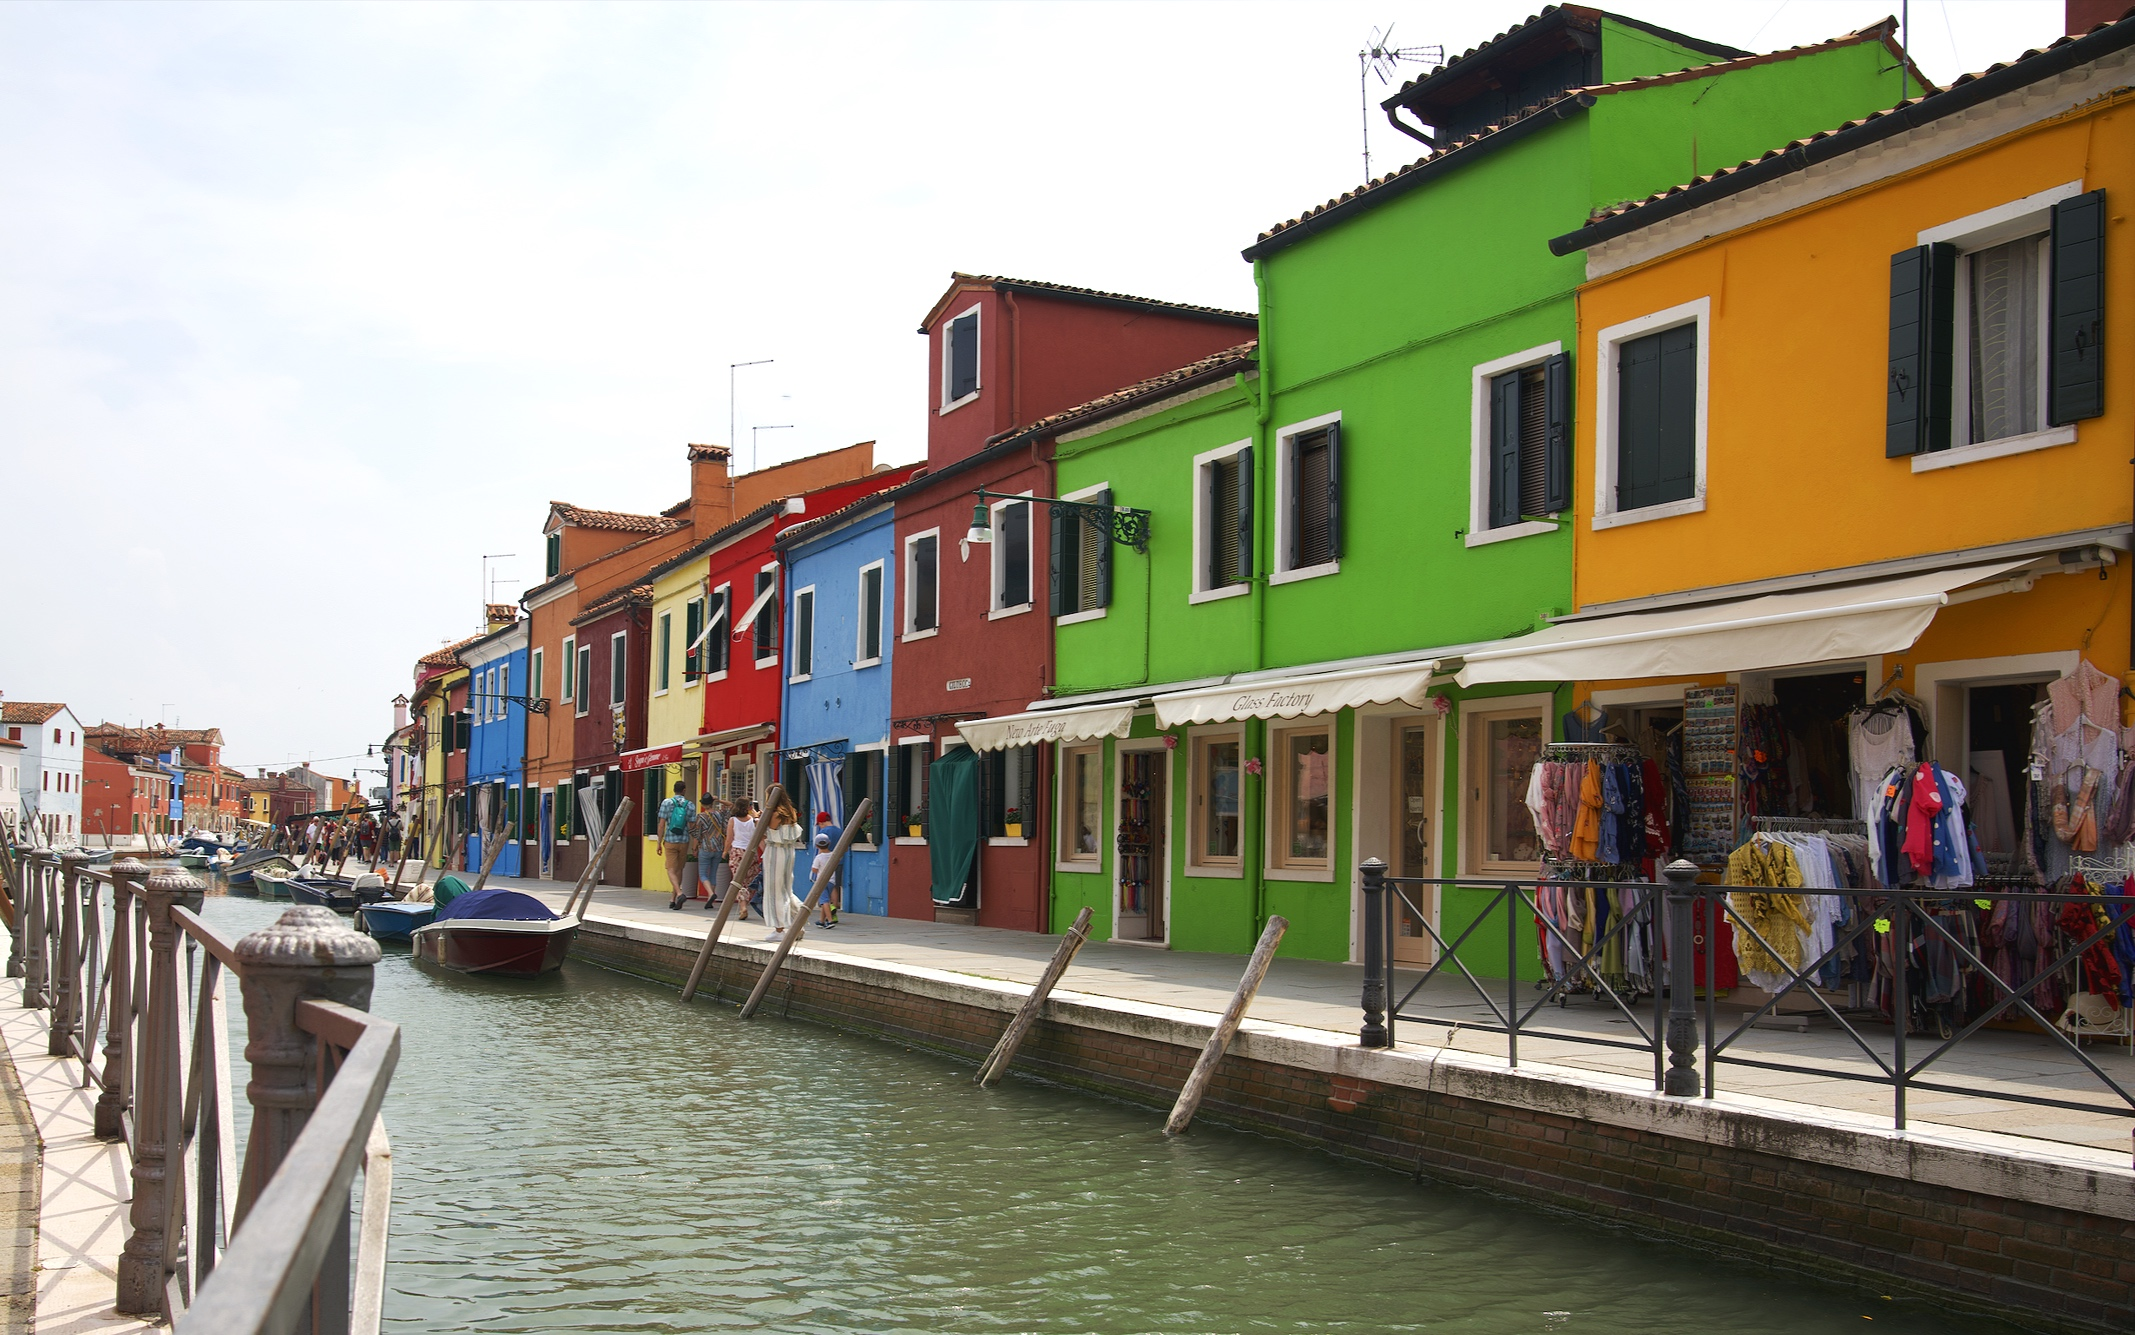 The colourful painted houses on Burano.